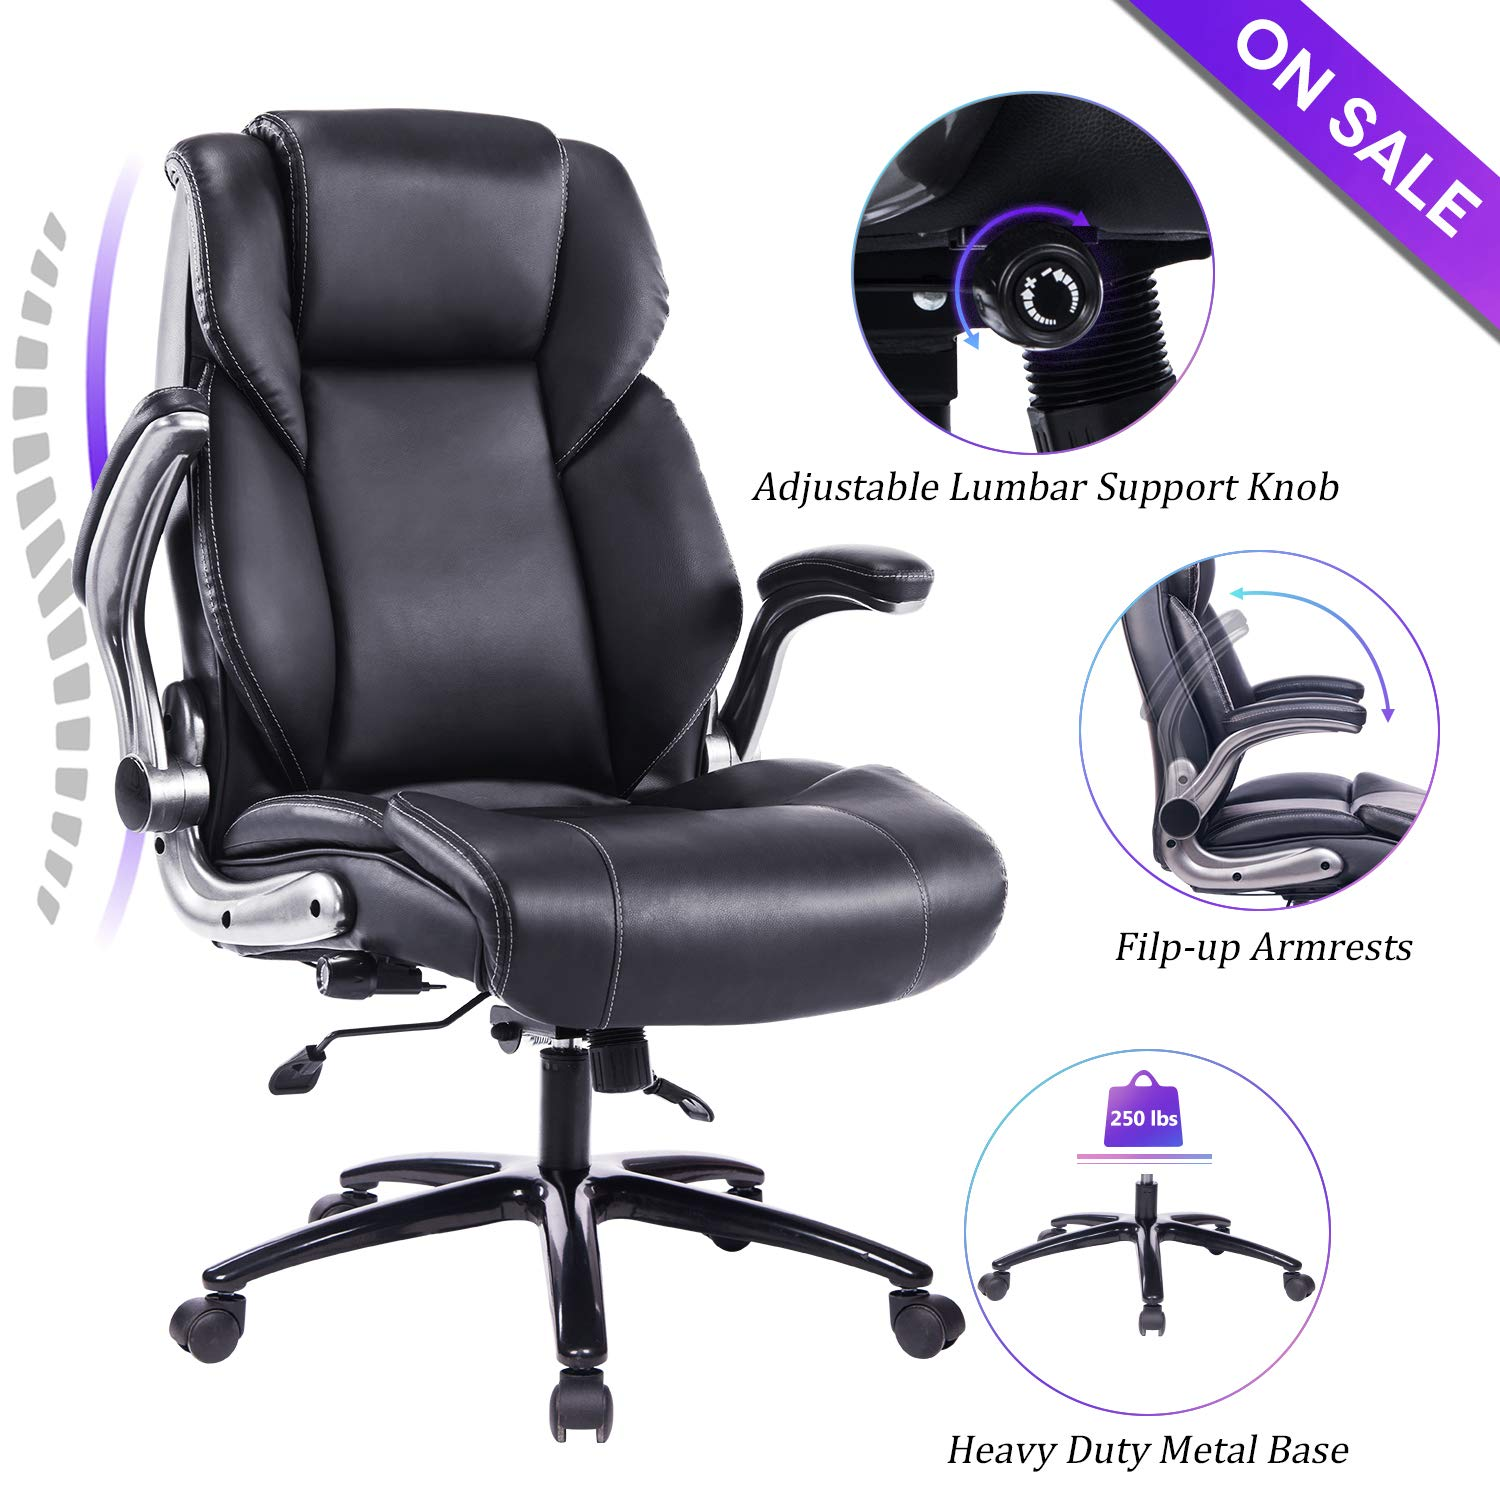 VANBOW Office Chair, Executive Computer Desk Task Swivel High Back Chair with Metal Base- Adjustable Built in Lumbar Support, Tilt Angle and Flip-Up Arms, Black